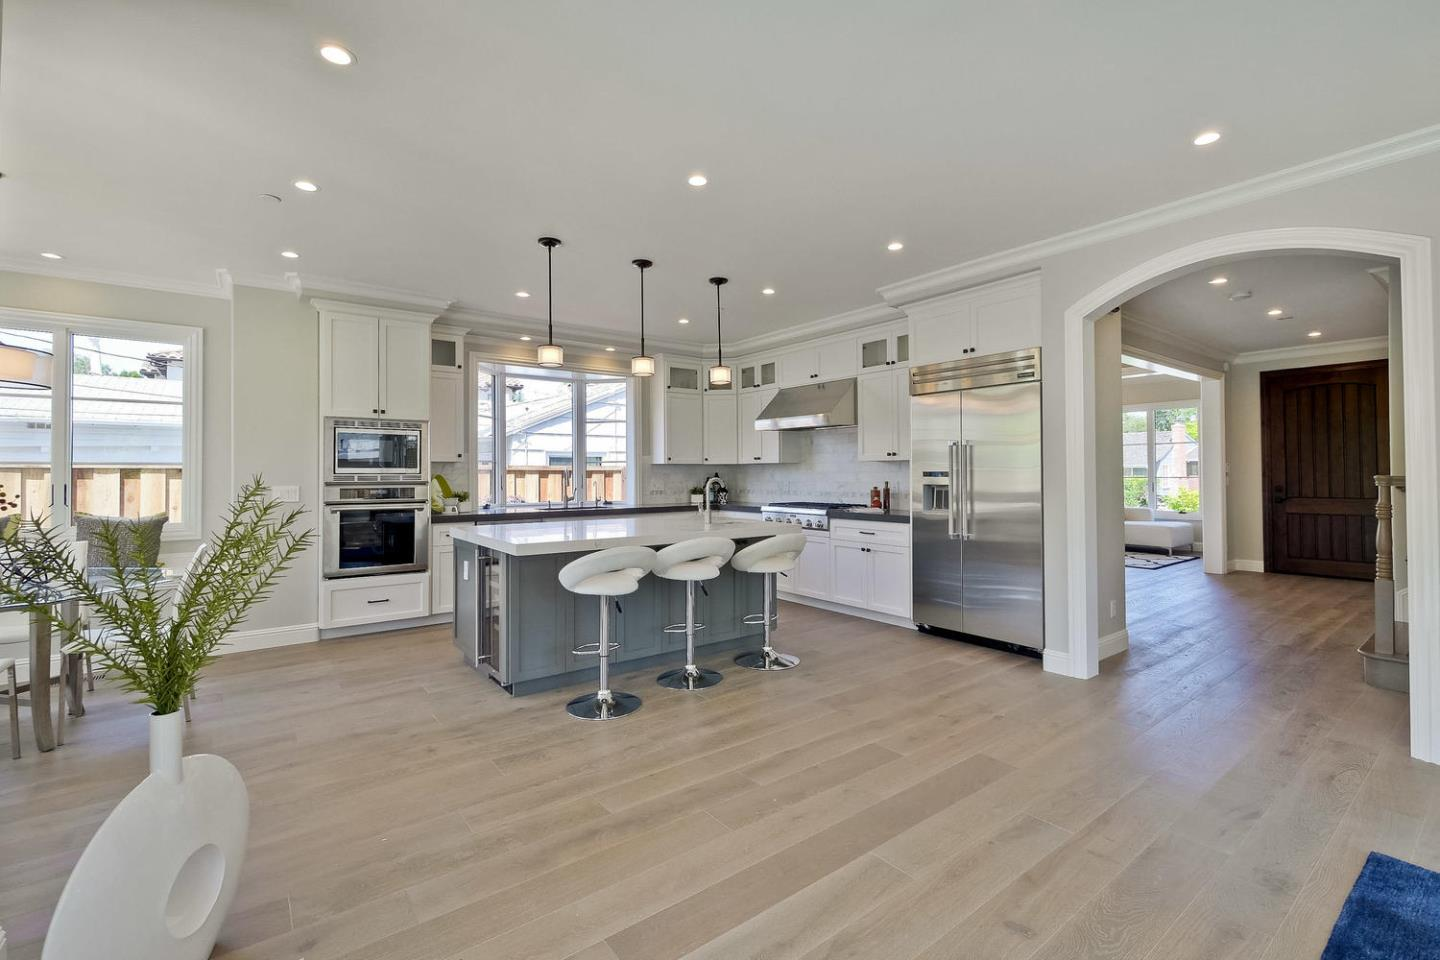 Additional photo for property listing at 2368 Santa Ana St  PALO ALTO, CALIFORNIA 94303